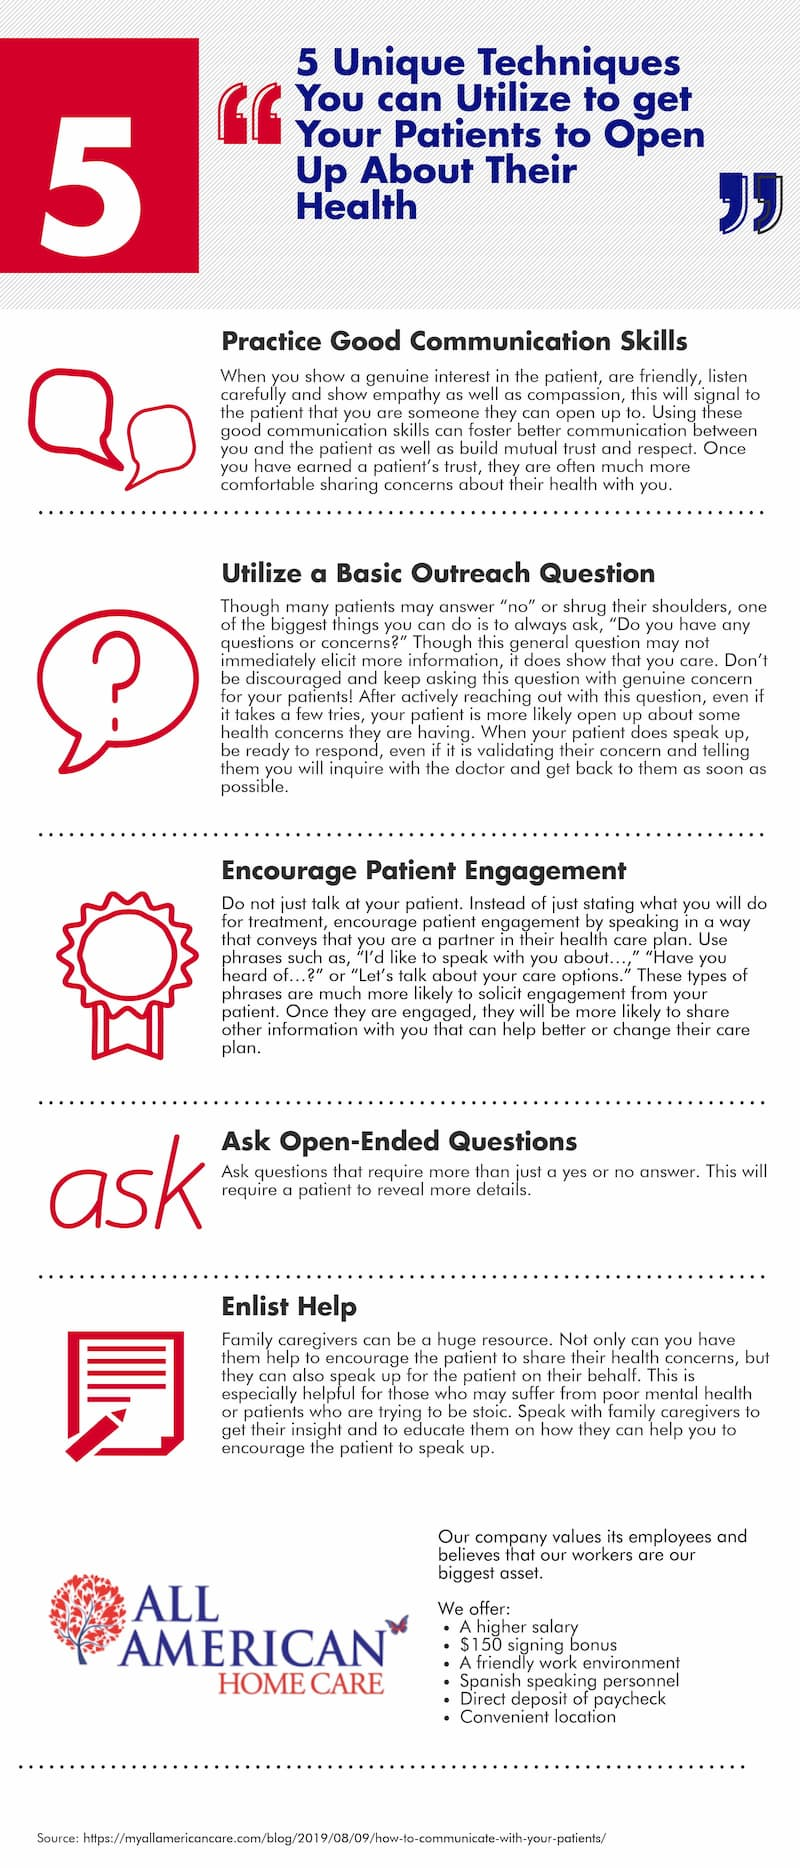 HOW TO COMMUNICATE AND ASK QUESTIONS THAT GET YOUR PATIENTS TO ACTUALLY SHARE WHAT'S GOING ON